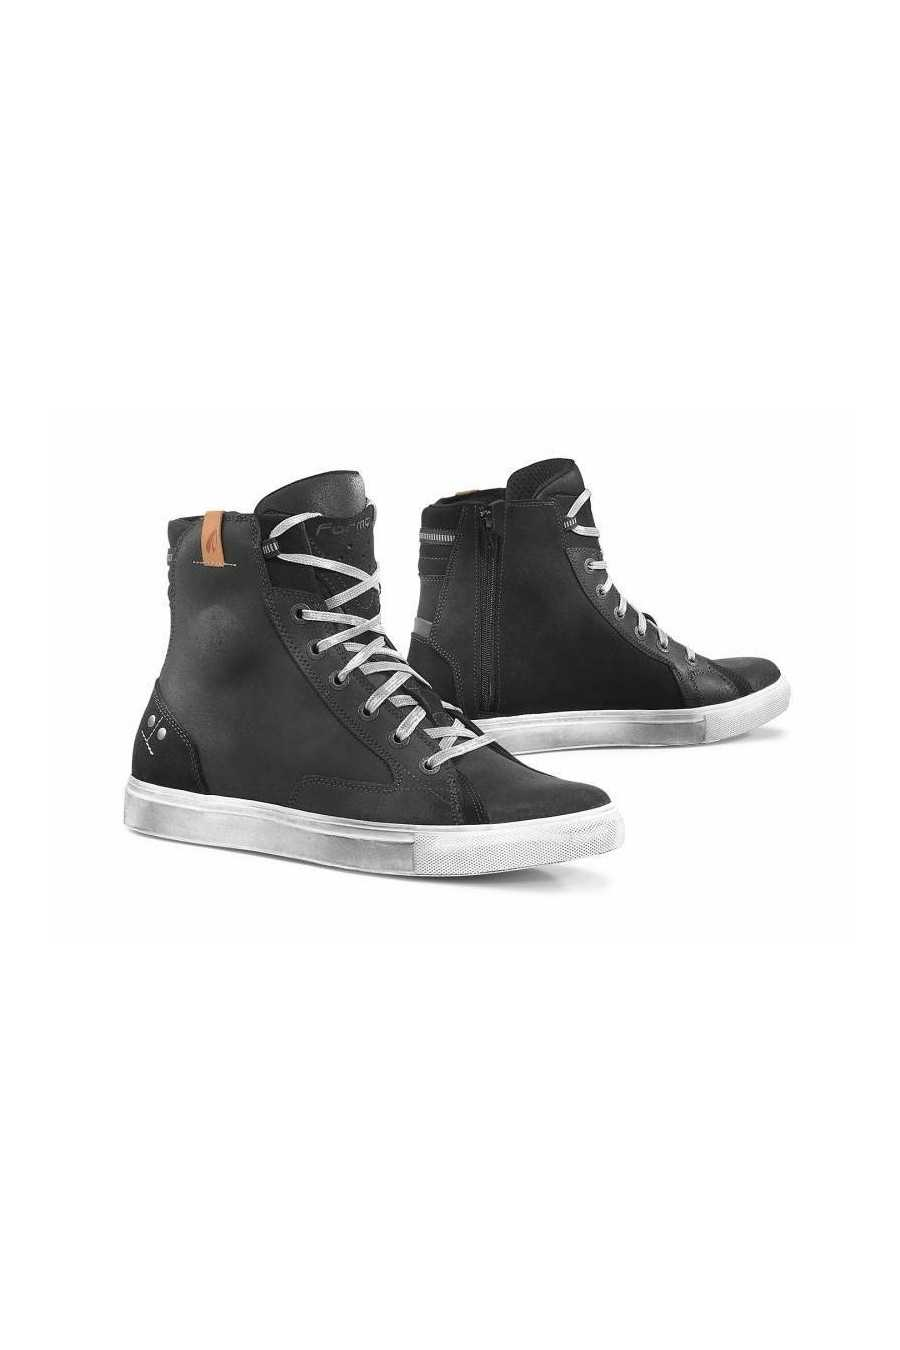 Forma Soul Motorcycle Shoes